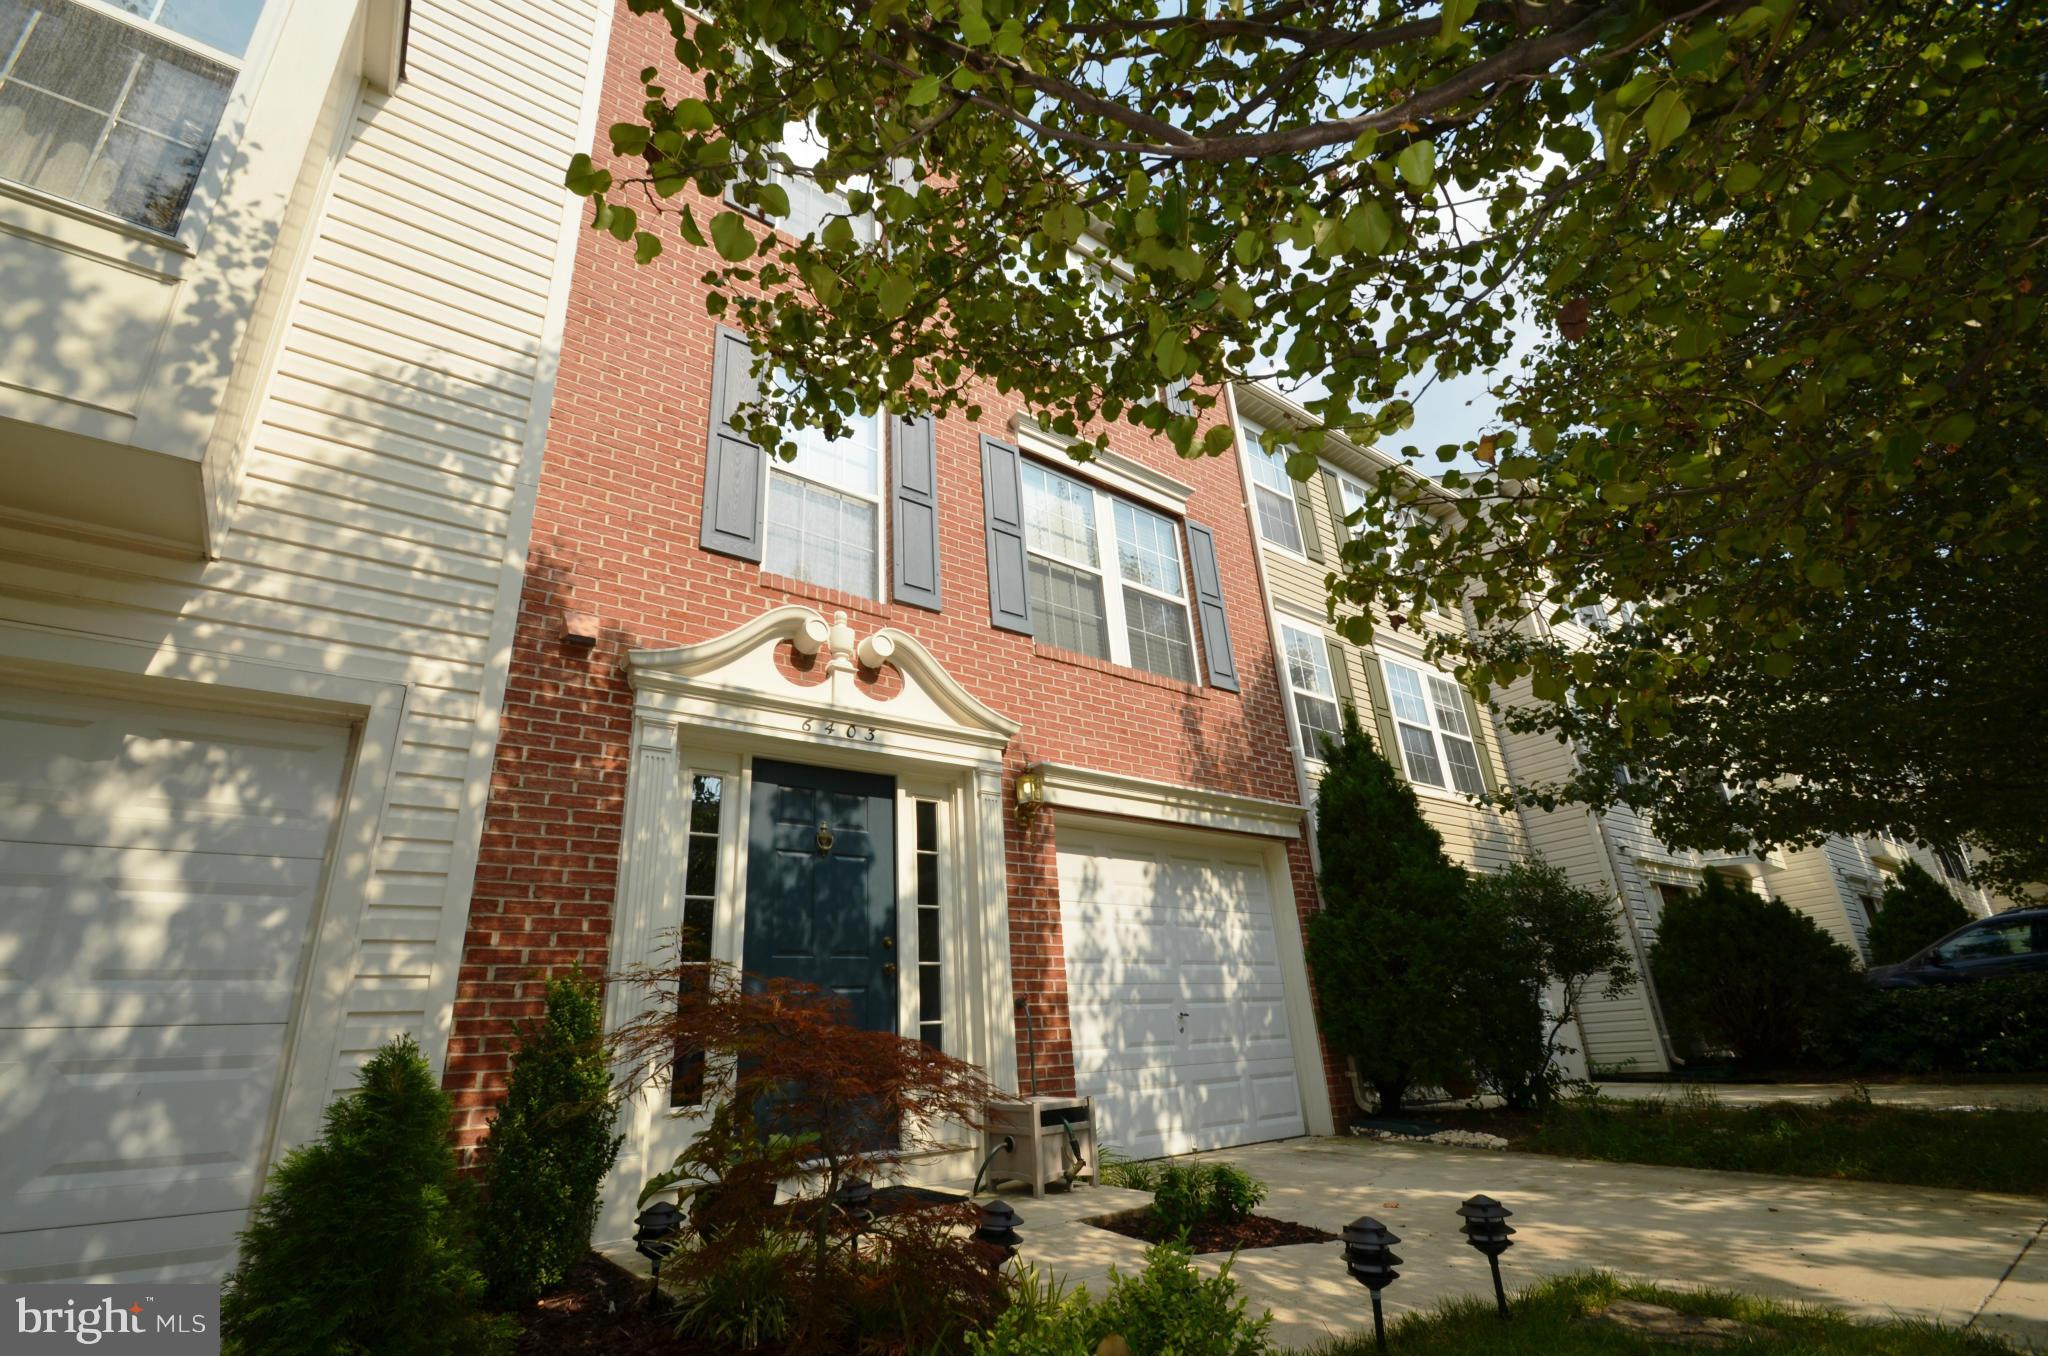 IMMACULATE 3BR, GAR TOWNHOME IN SPRINGFIELD..SPACIOUS LIV & DIN RM W/ BEAUTIFUL WOOD FLOORING..FULLY UPDATED KIT W/ SS APPLIANCES, SILESTONE & CTR ISLAND..BREAKFAST AREA W/ WALKOUT SUNDECK..LARGE MBR SUITE W/ WALK-IN CLOSET... REC RM W/ WOOD FLRS, GAS FIREPLACE & WALKOUT TO BRICK PATIO & FENCED BACKYARD..NEW LIGHTING & MUCH MORE..WALK TO POOL...EASY ACCESS TO BELTWAY & METRO... AVAIL 21 MAY